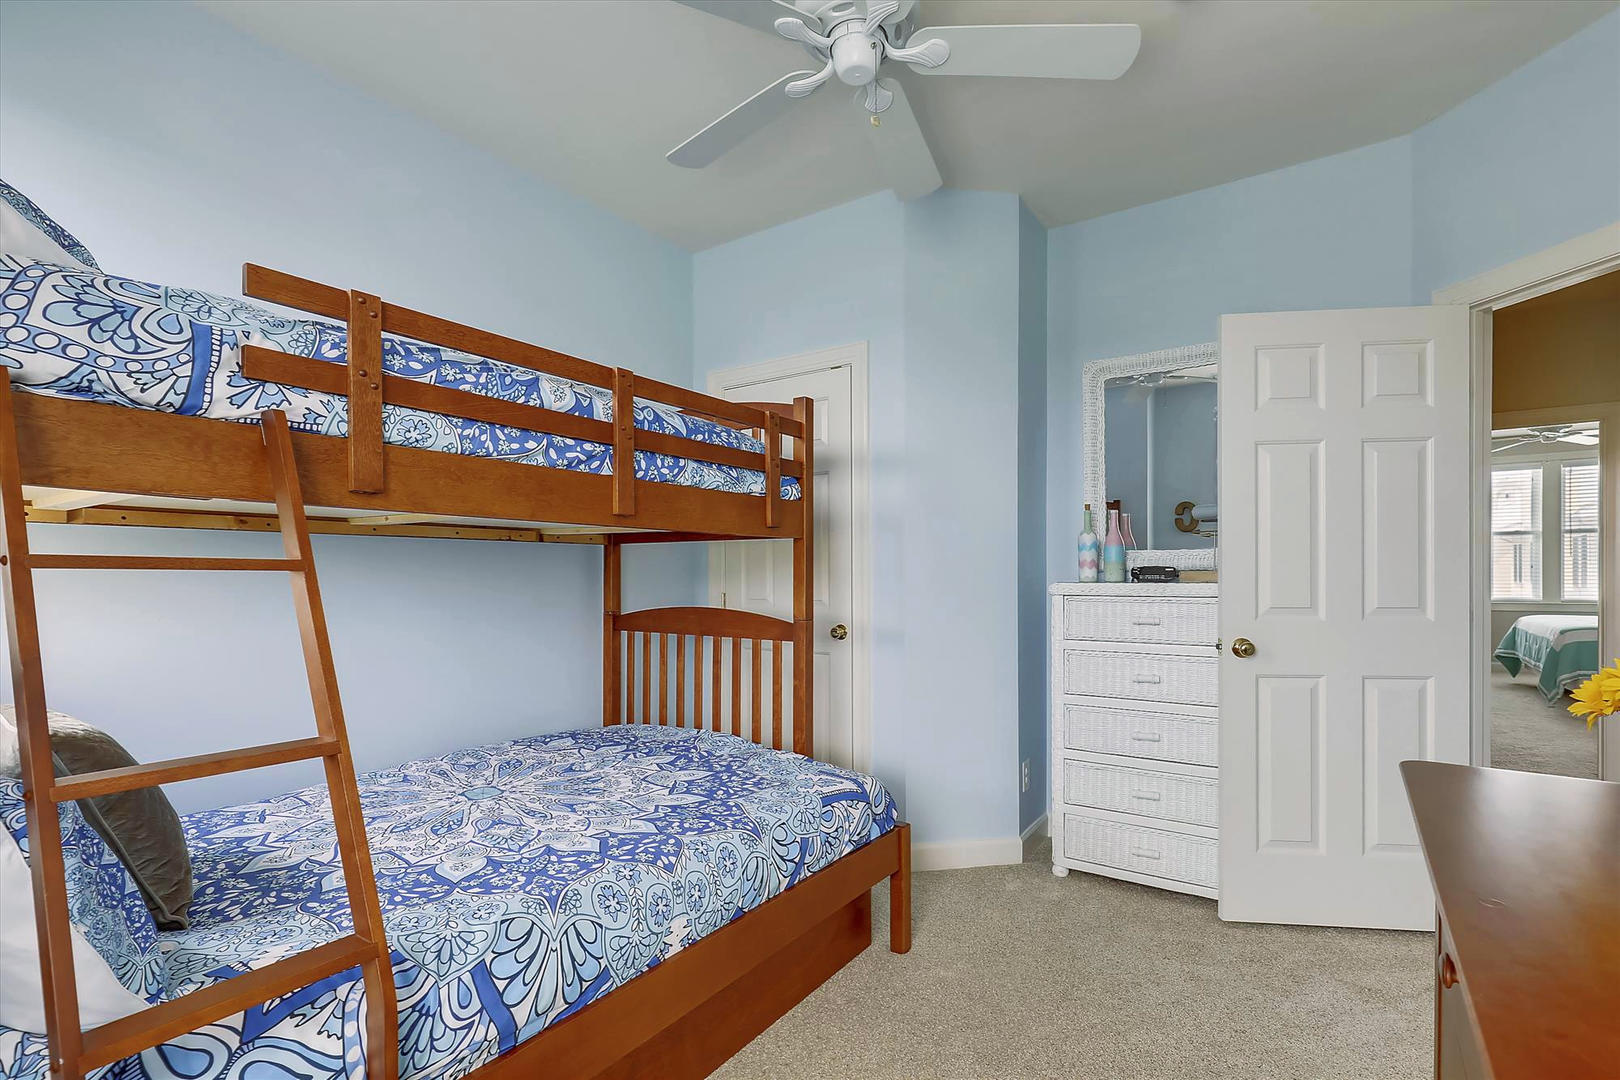 Sunset Island 17 Fountain Dr. W - First Bunk Bed Room on 3rd Floor